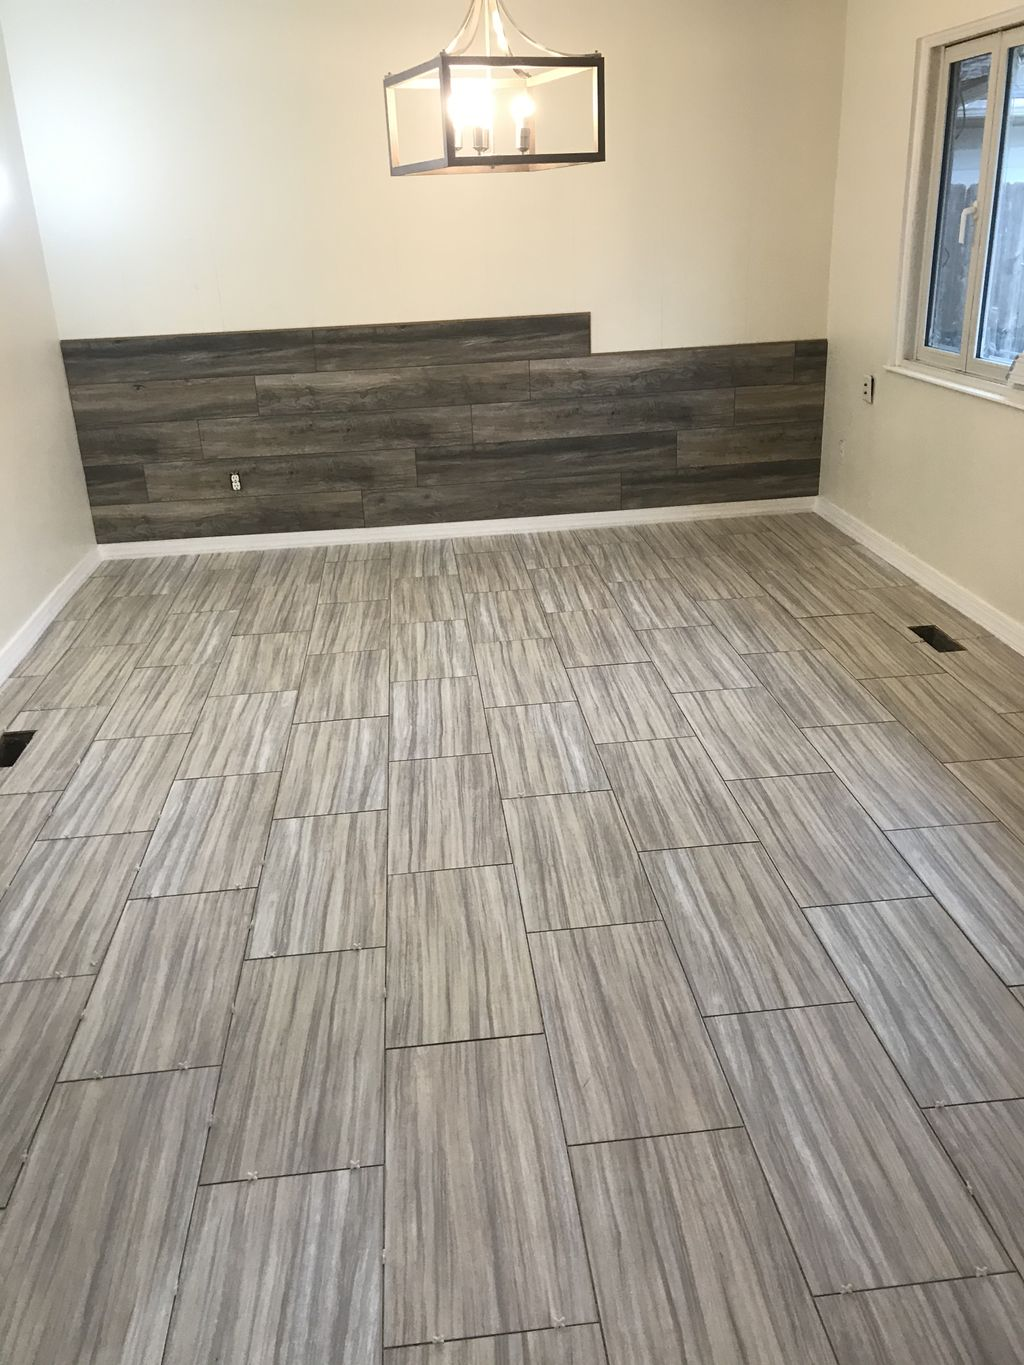 Accent wall and floor